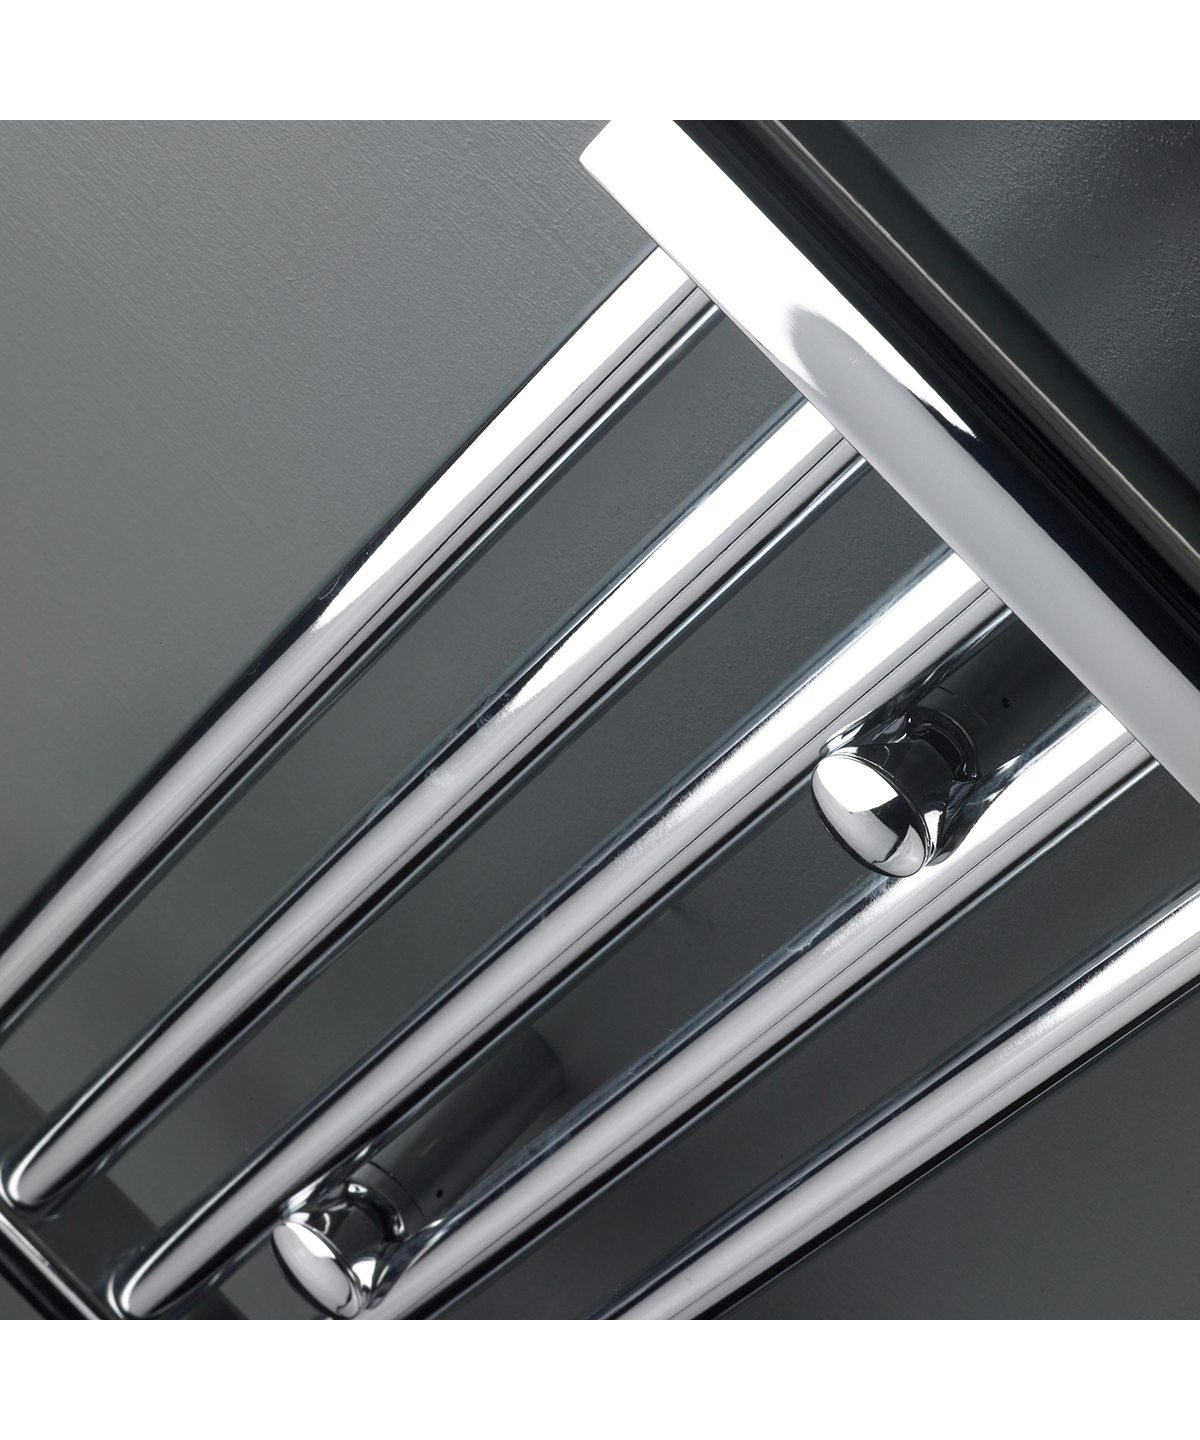 Kudox Lst Electric Towel Rail 500x1200mm Chrome